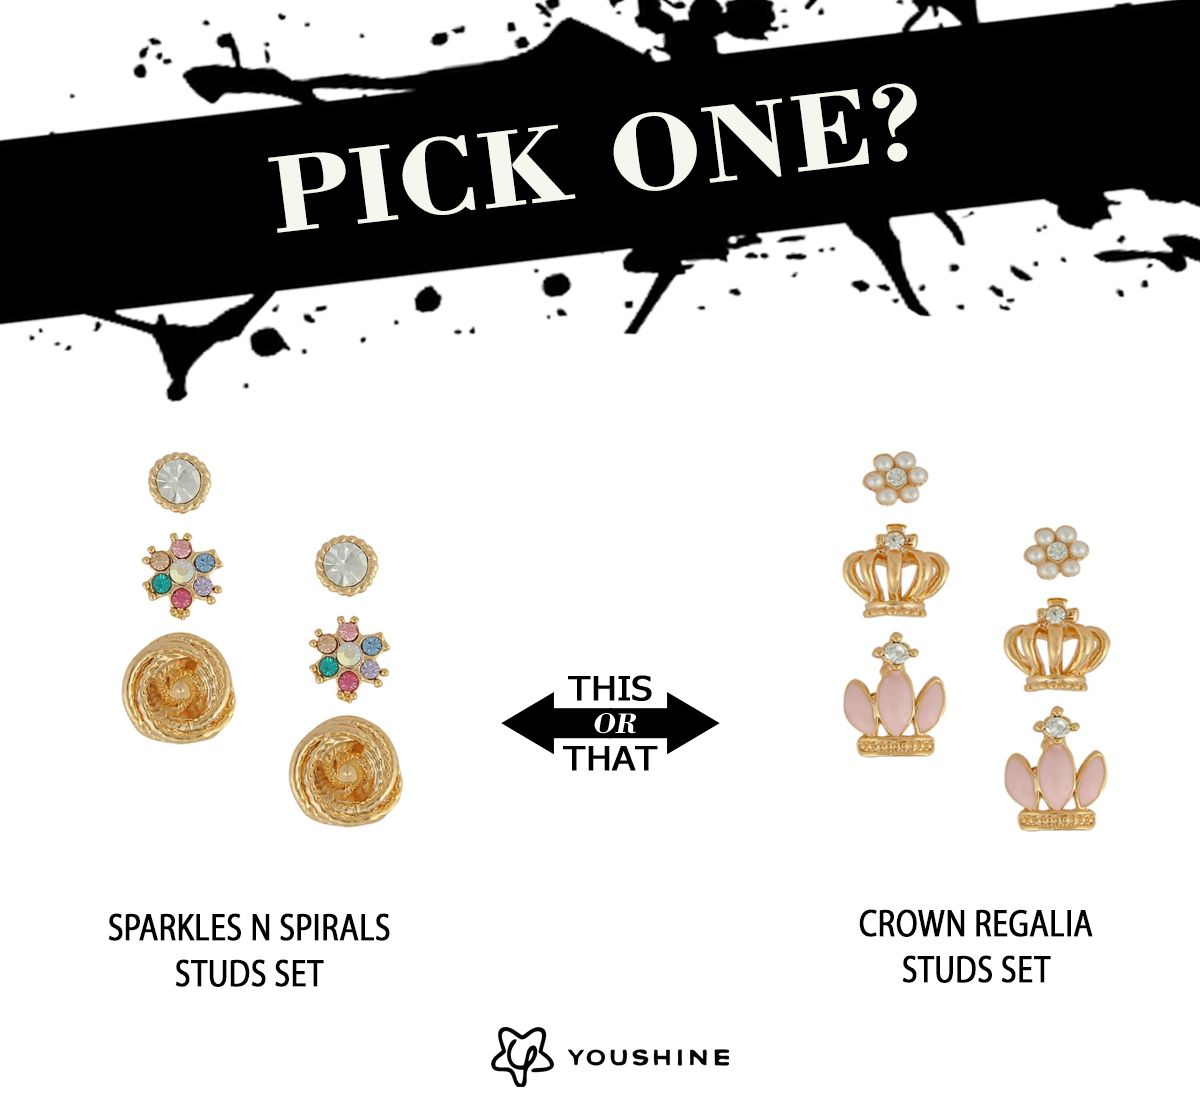 Pick One !!  http://www.youshine.in/product/crown-regalia-studs-set/4145.html? OR  http://www.youshine.in/product/sparkles-n-spirals-studs-set/4147.html?  #studs #earrings #jewelry #fashion #trends #love